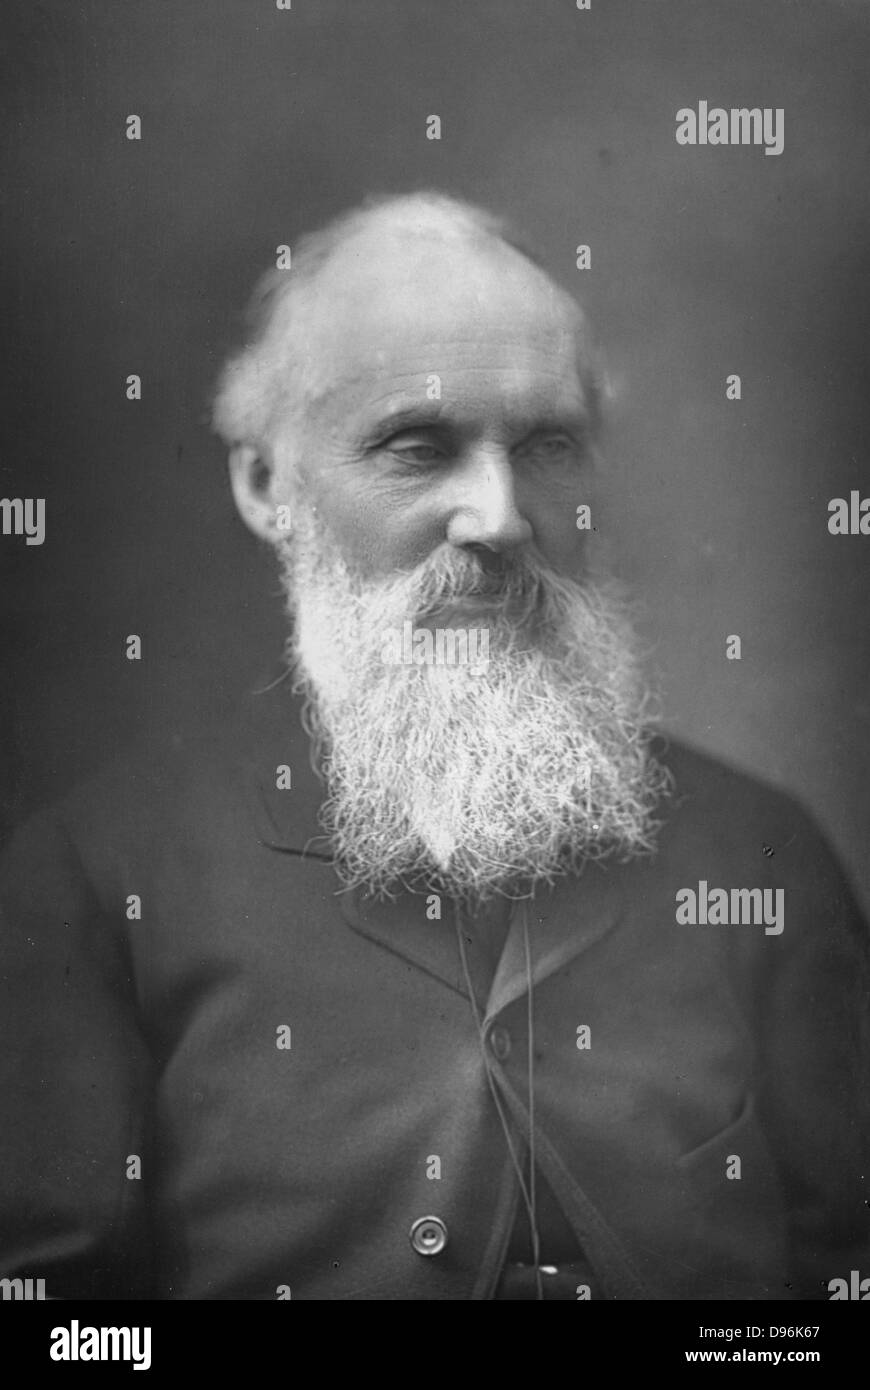 William Thomson, Lord Klevin (1824-1907), Scottish mathematician and physicist. Photograph published London c1890. - Stock Image